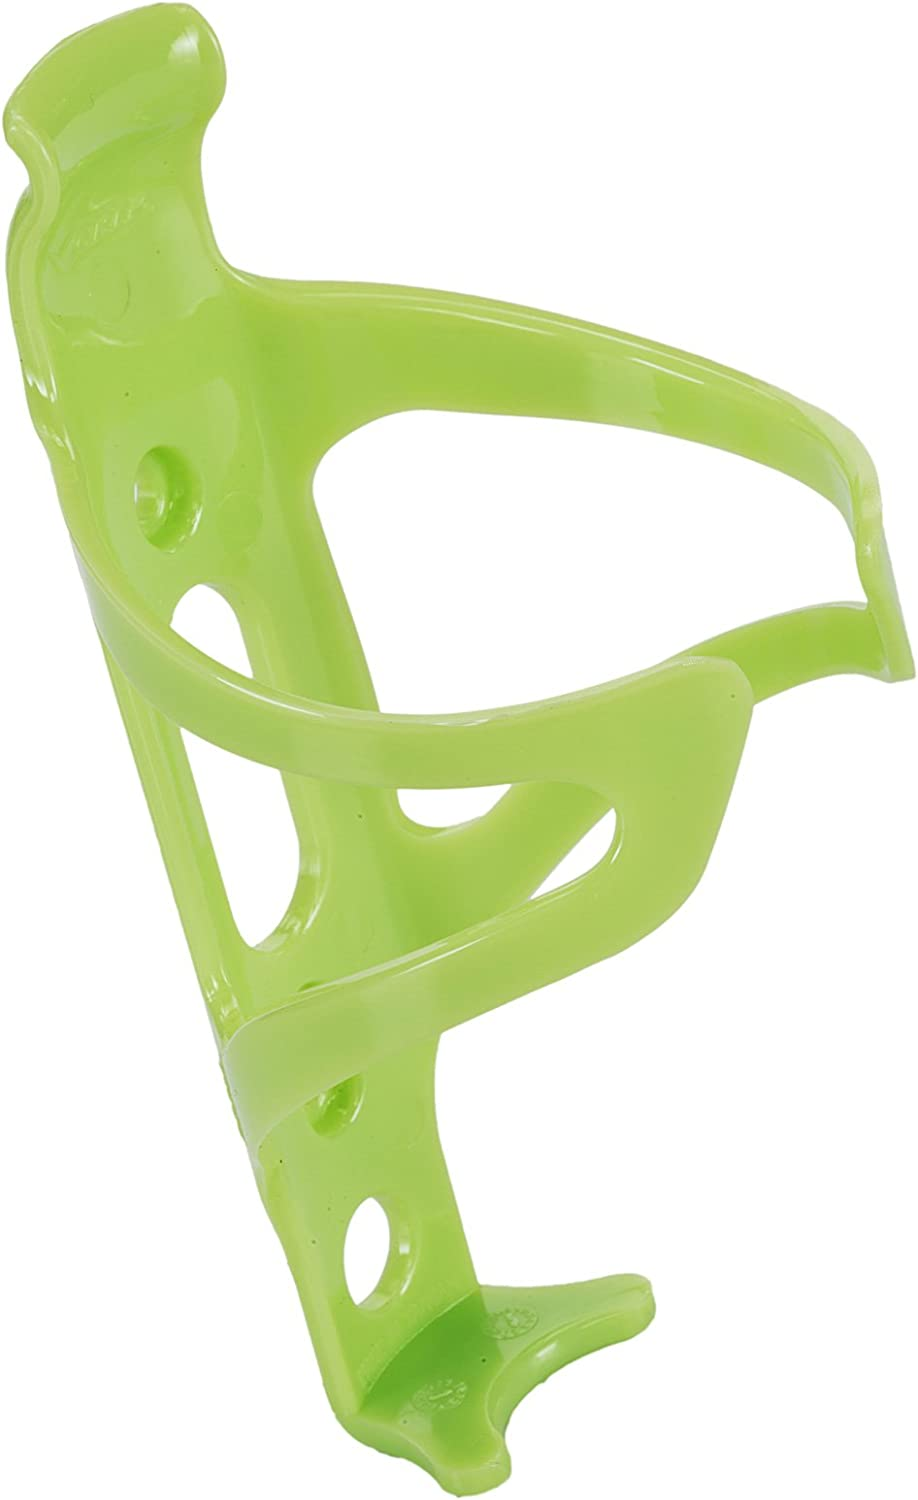 Cicli Bonin Nfun N Clever Bottle Cages